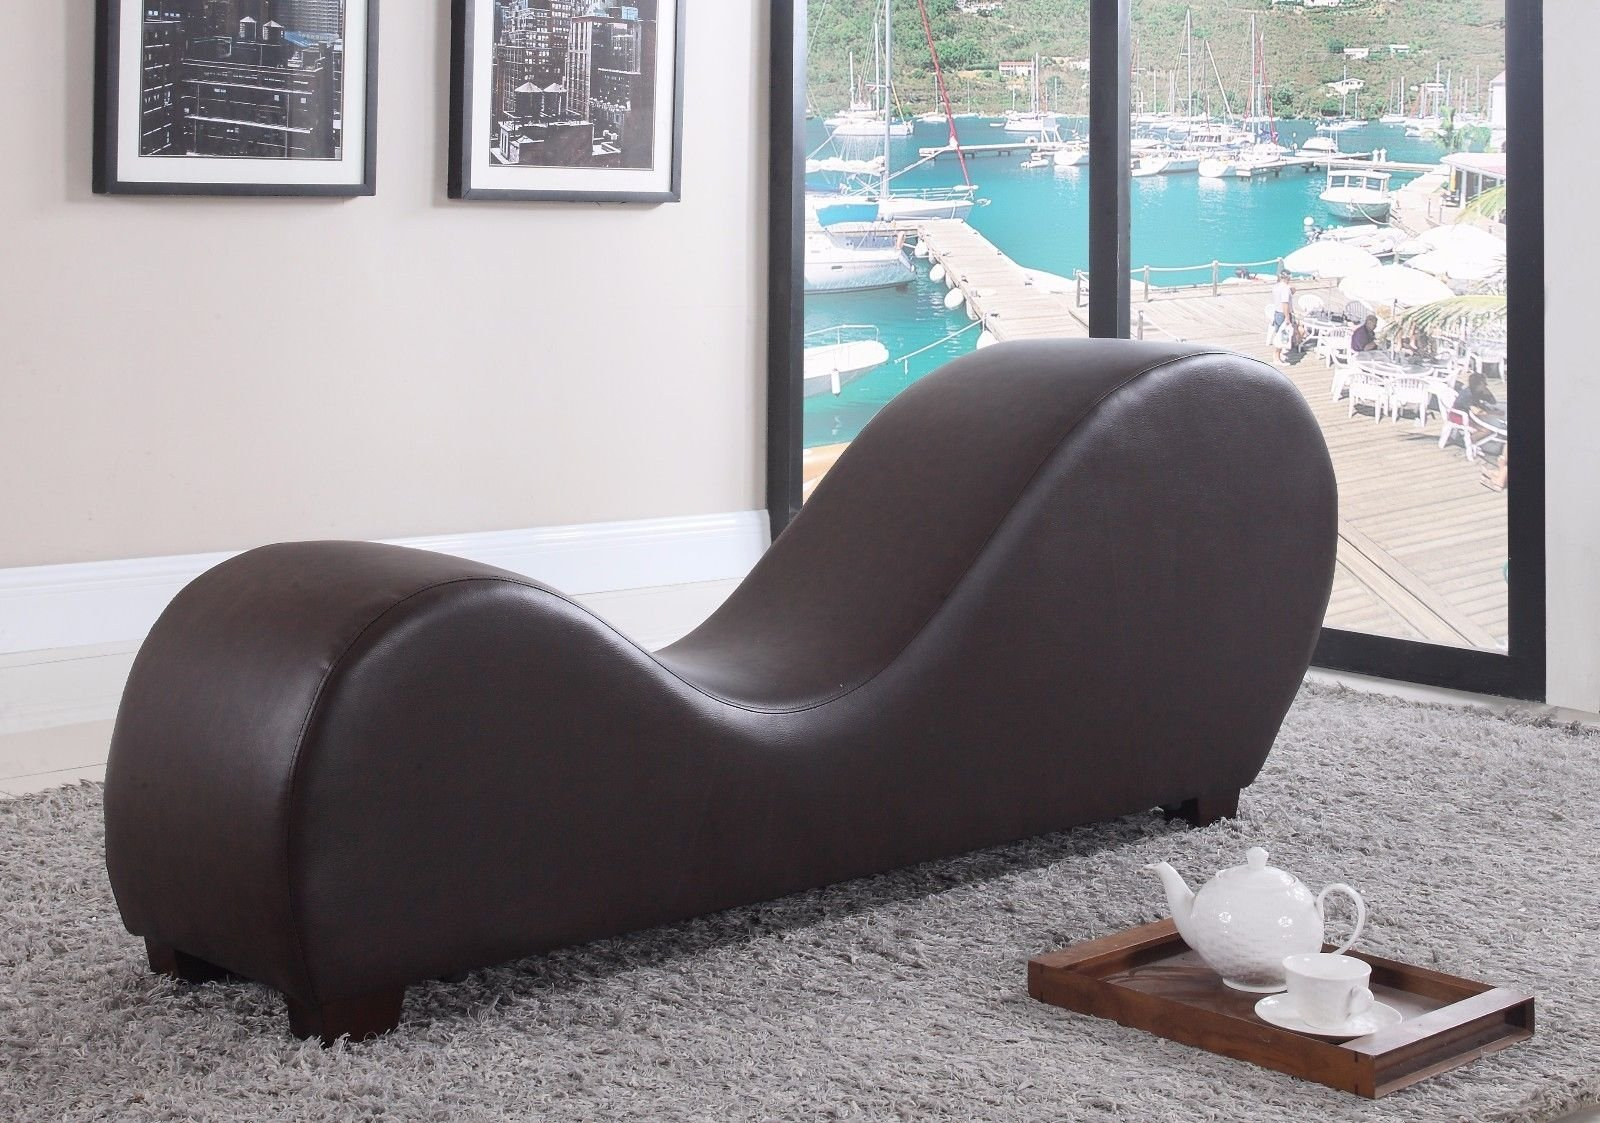 yoga sofa ikea sleeper brown modern bonded leather chair stretching relaxation chaise stretch relax lounge